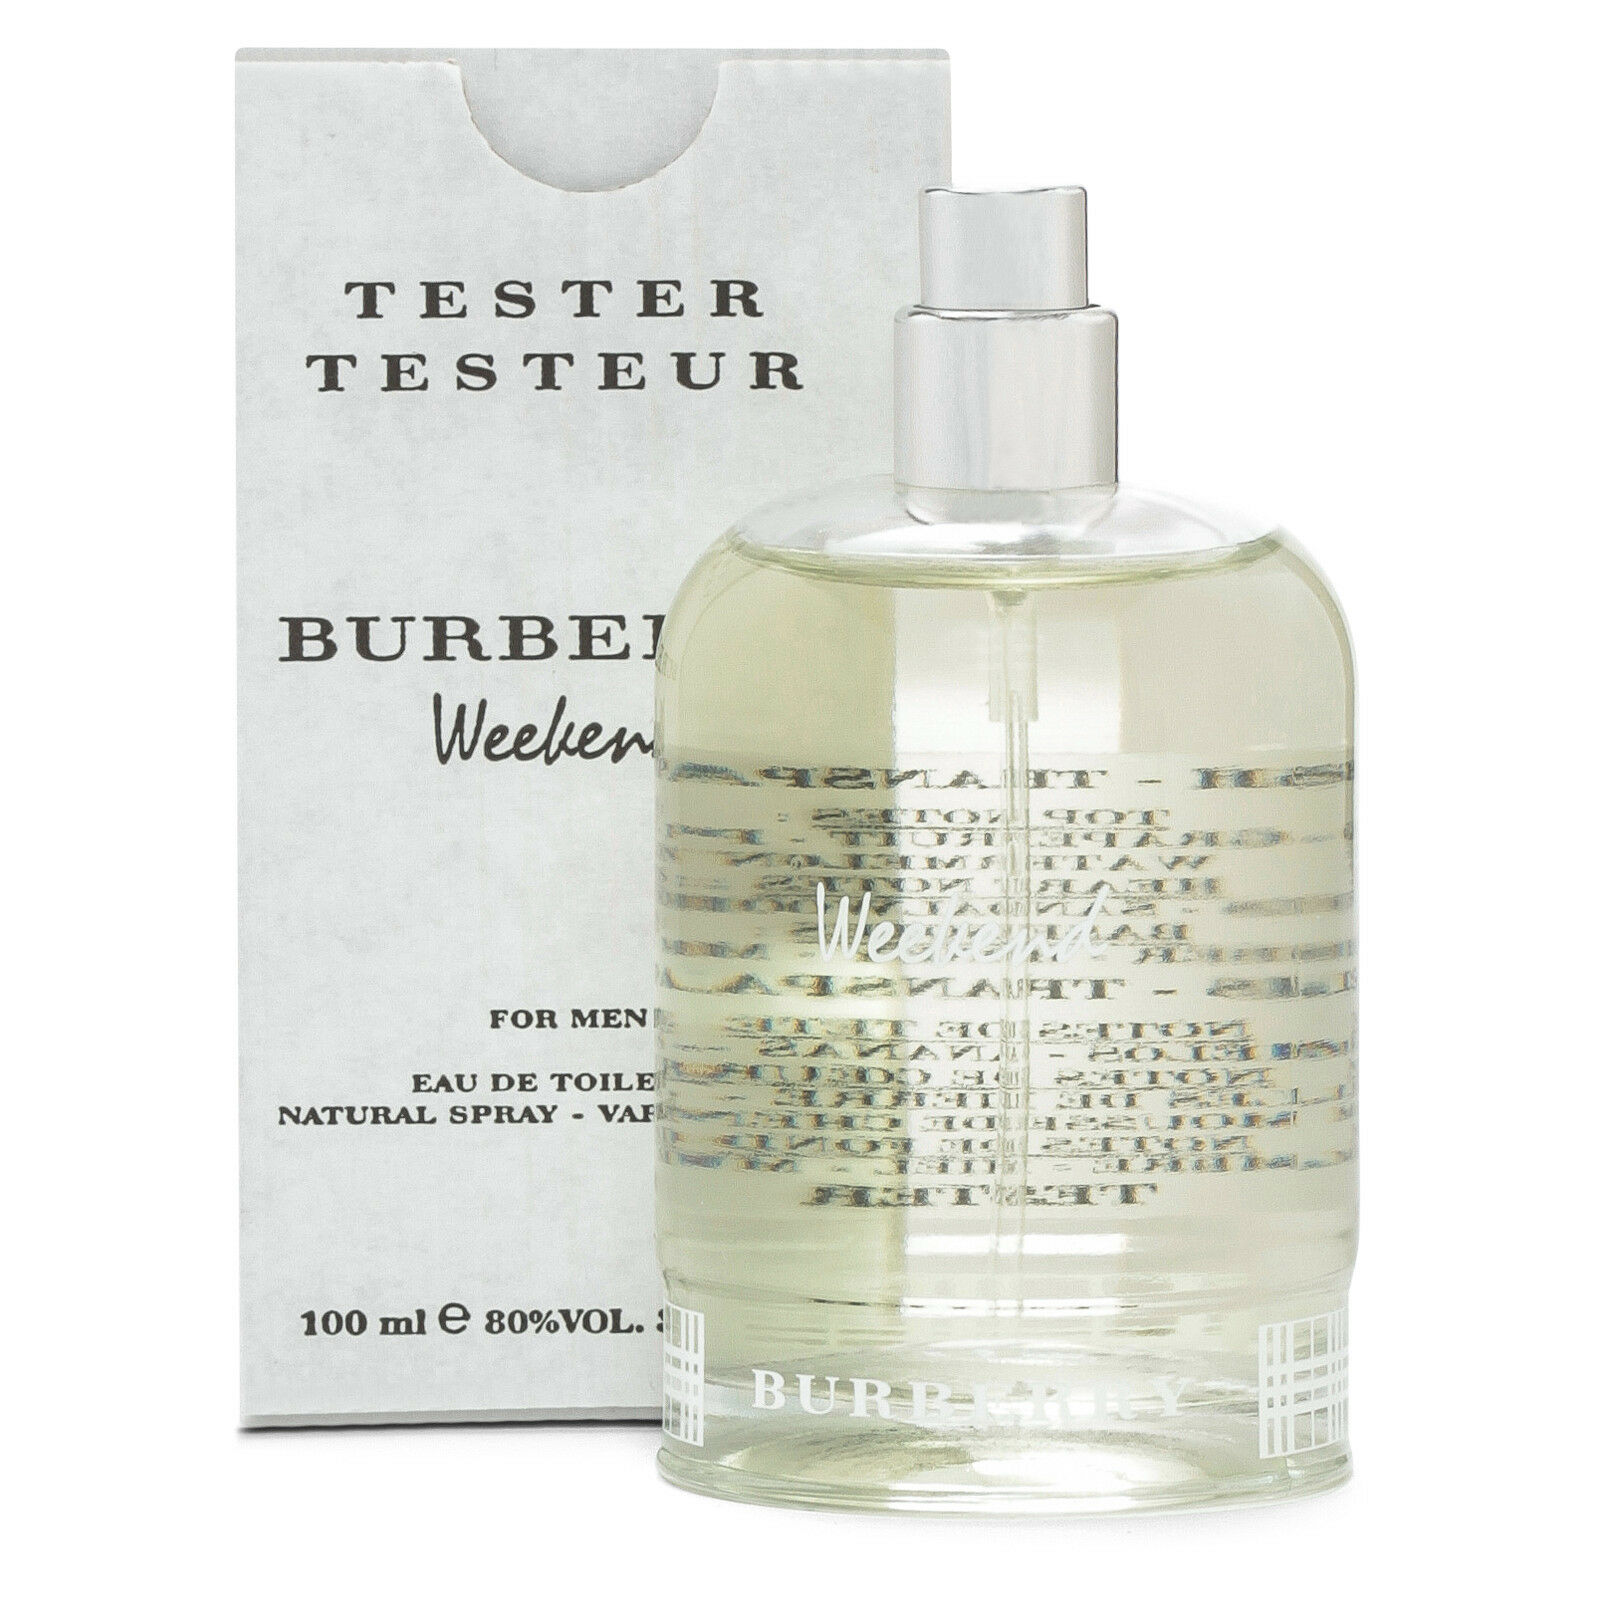 be07c8c9a4b Burberry Weekend Men s 3.4oz   100ml EDT- New In Box - TESTER ...